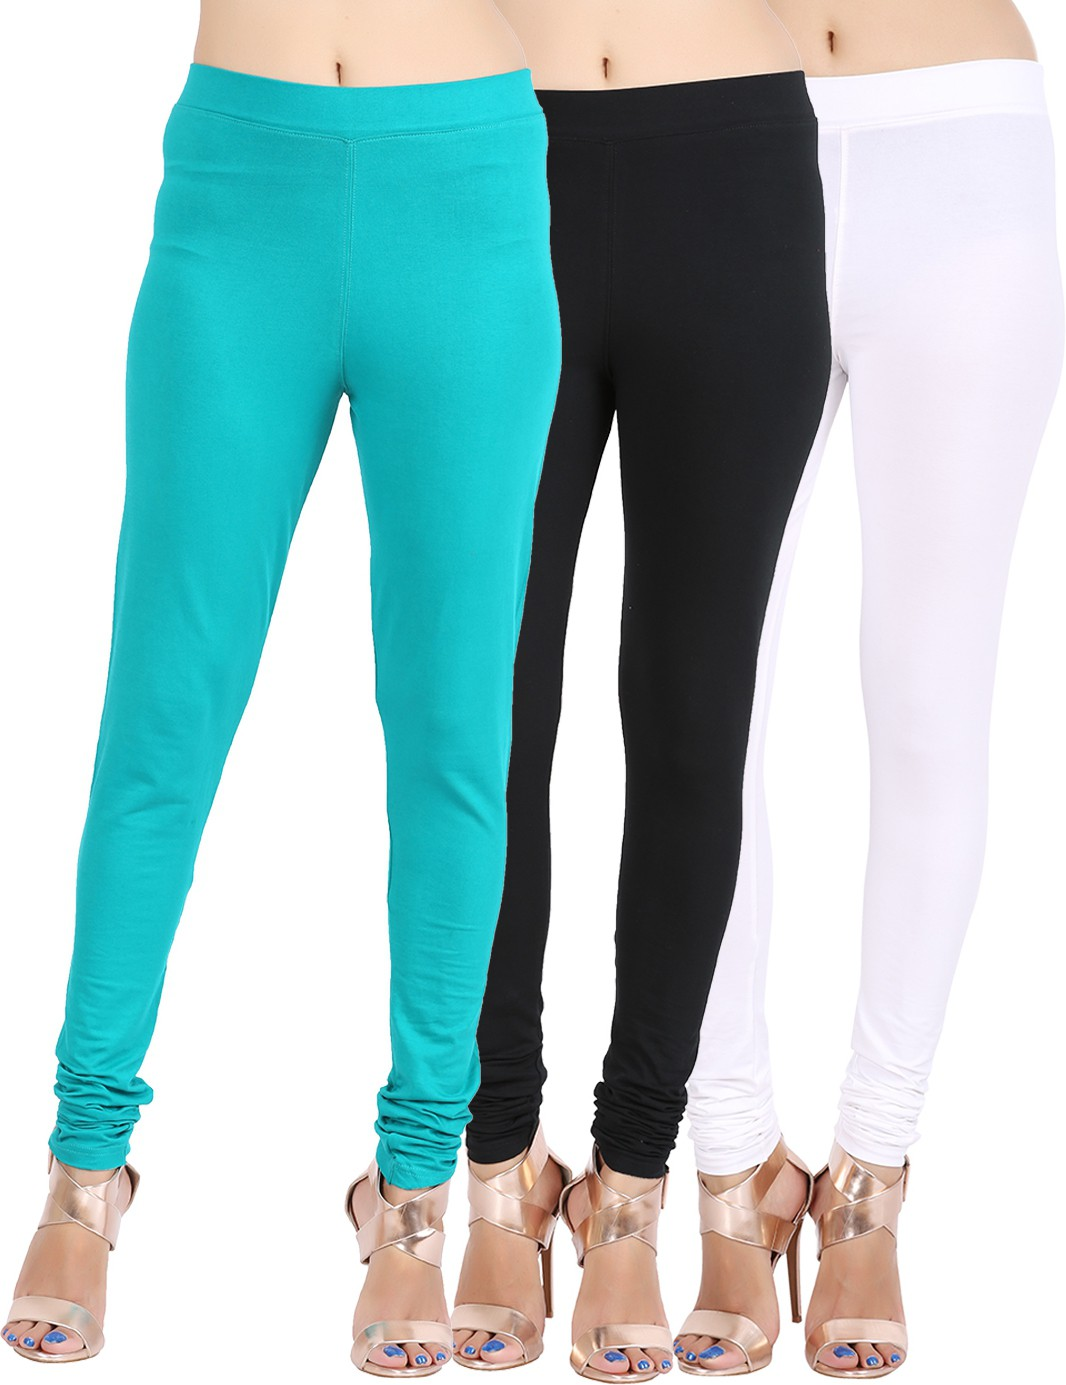 Lula Ms Womens White, Black, Dark Green Leggings(Pack of 3)